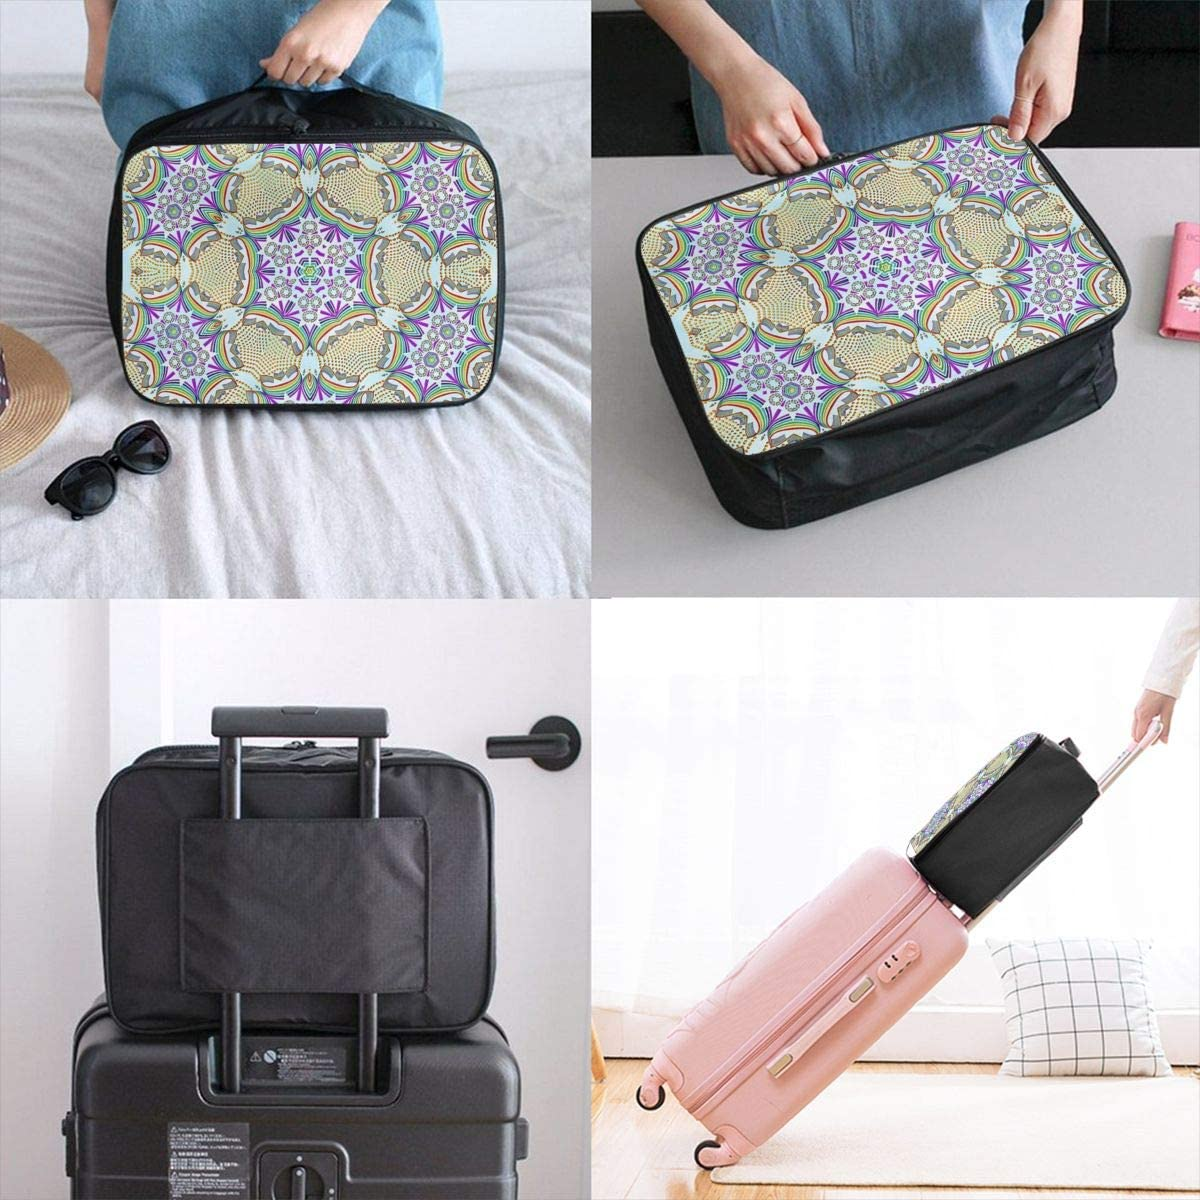 Yunshm Tile Ornament Kaleidoscope Colorful Units Personalized Trolley Handbag Waterproof Unisex Large Capacity For Business Travel Storage